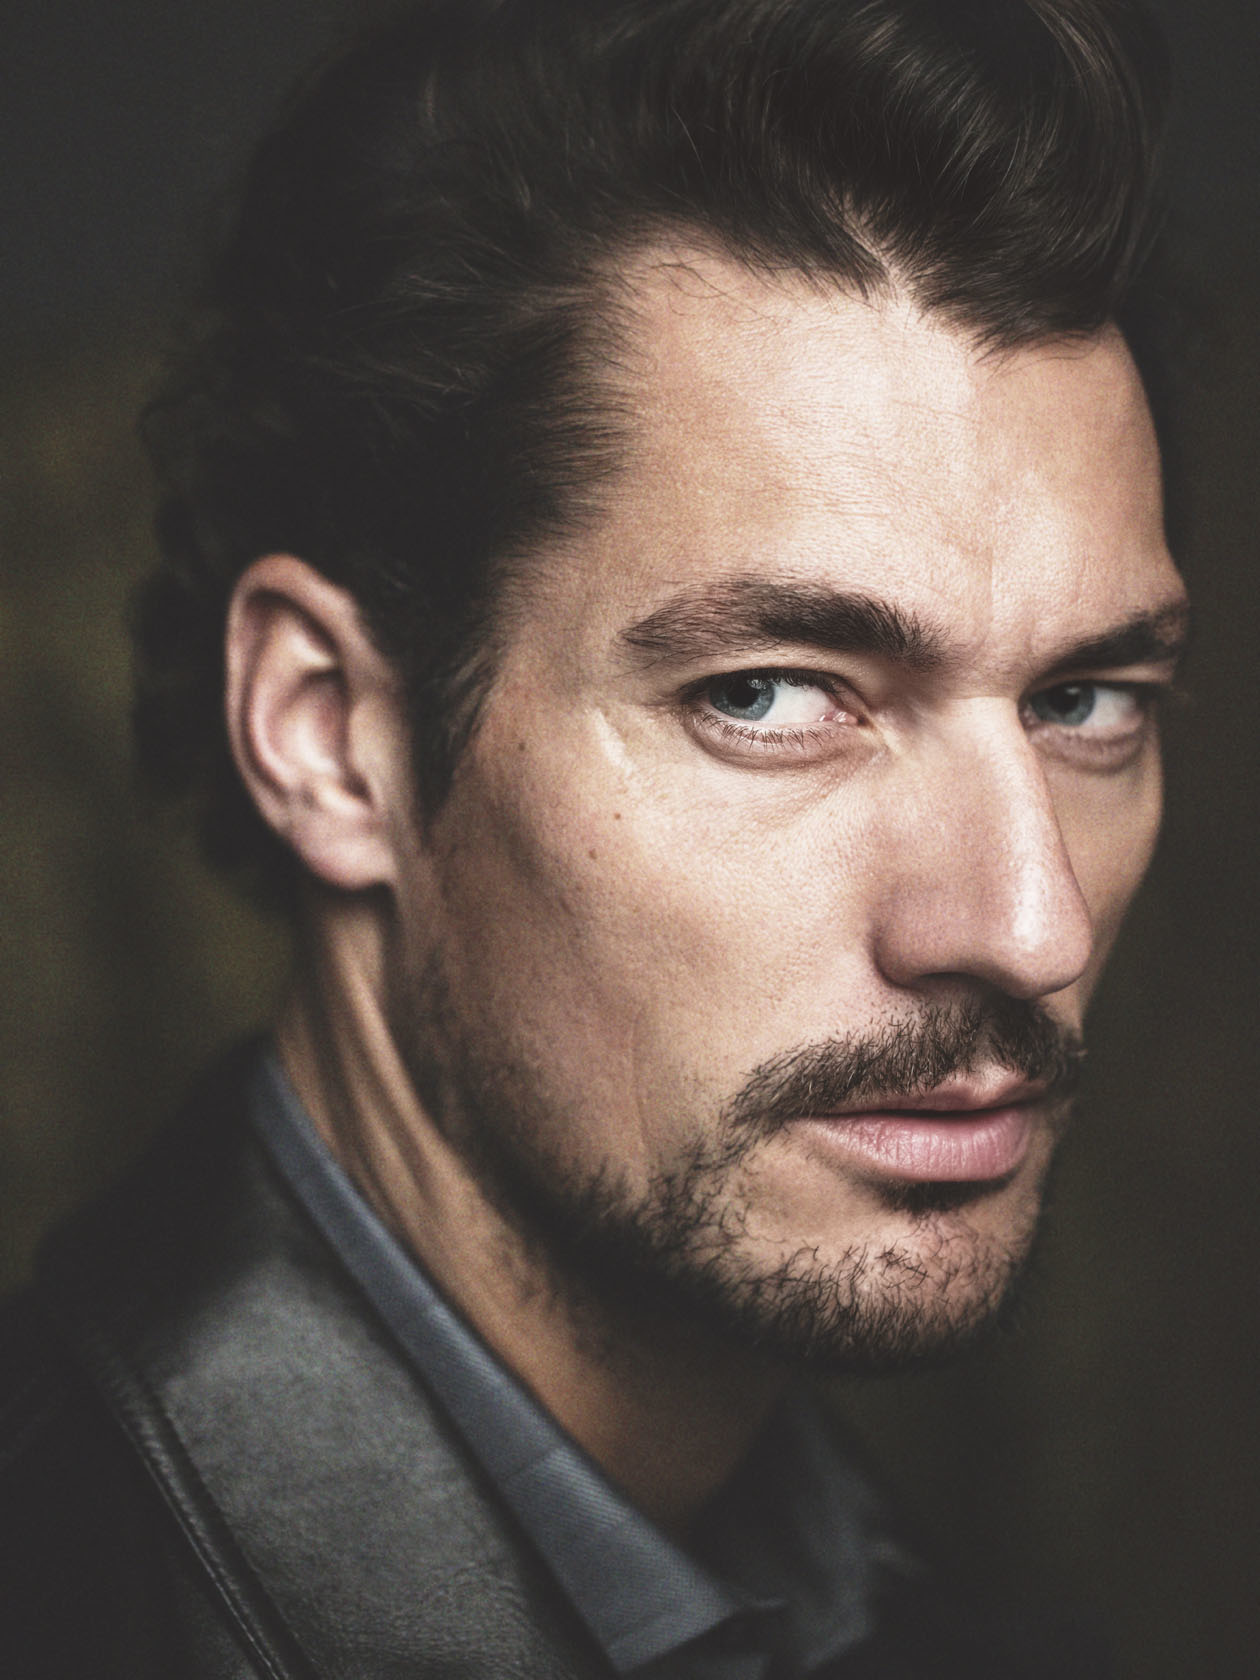 David Gandy FHM Collections China Jumbo Photographe